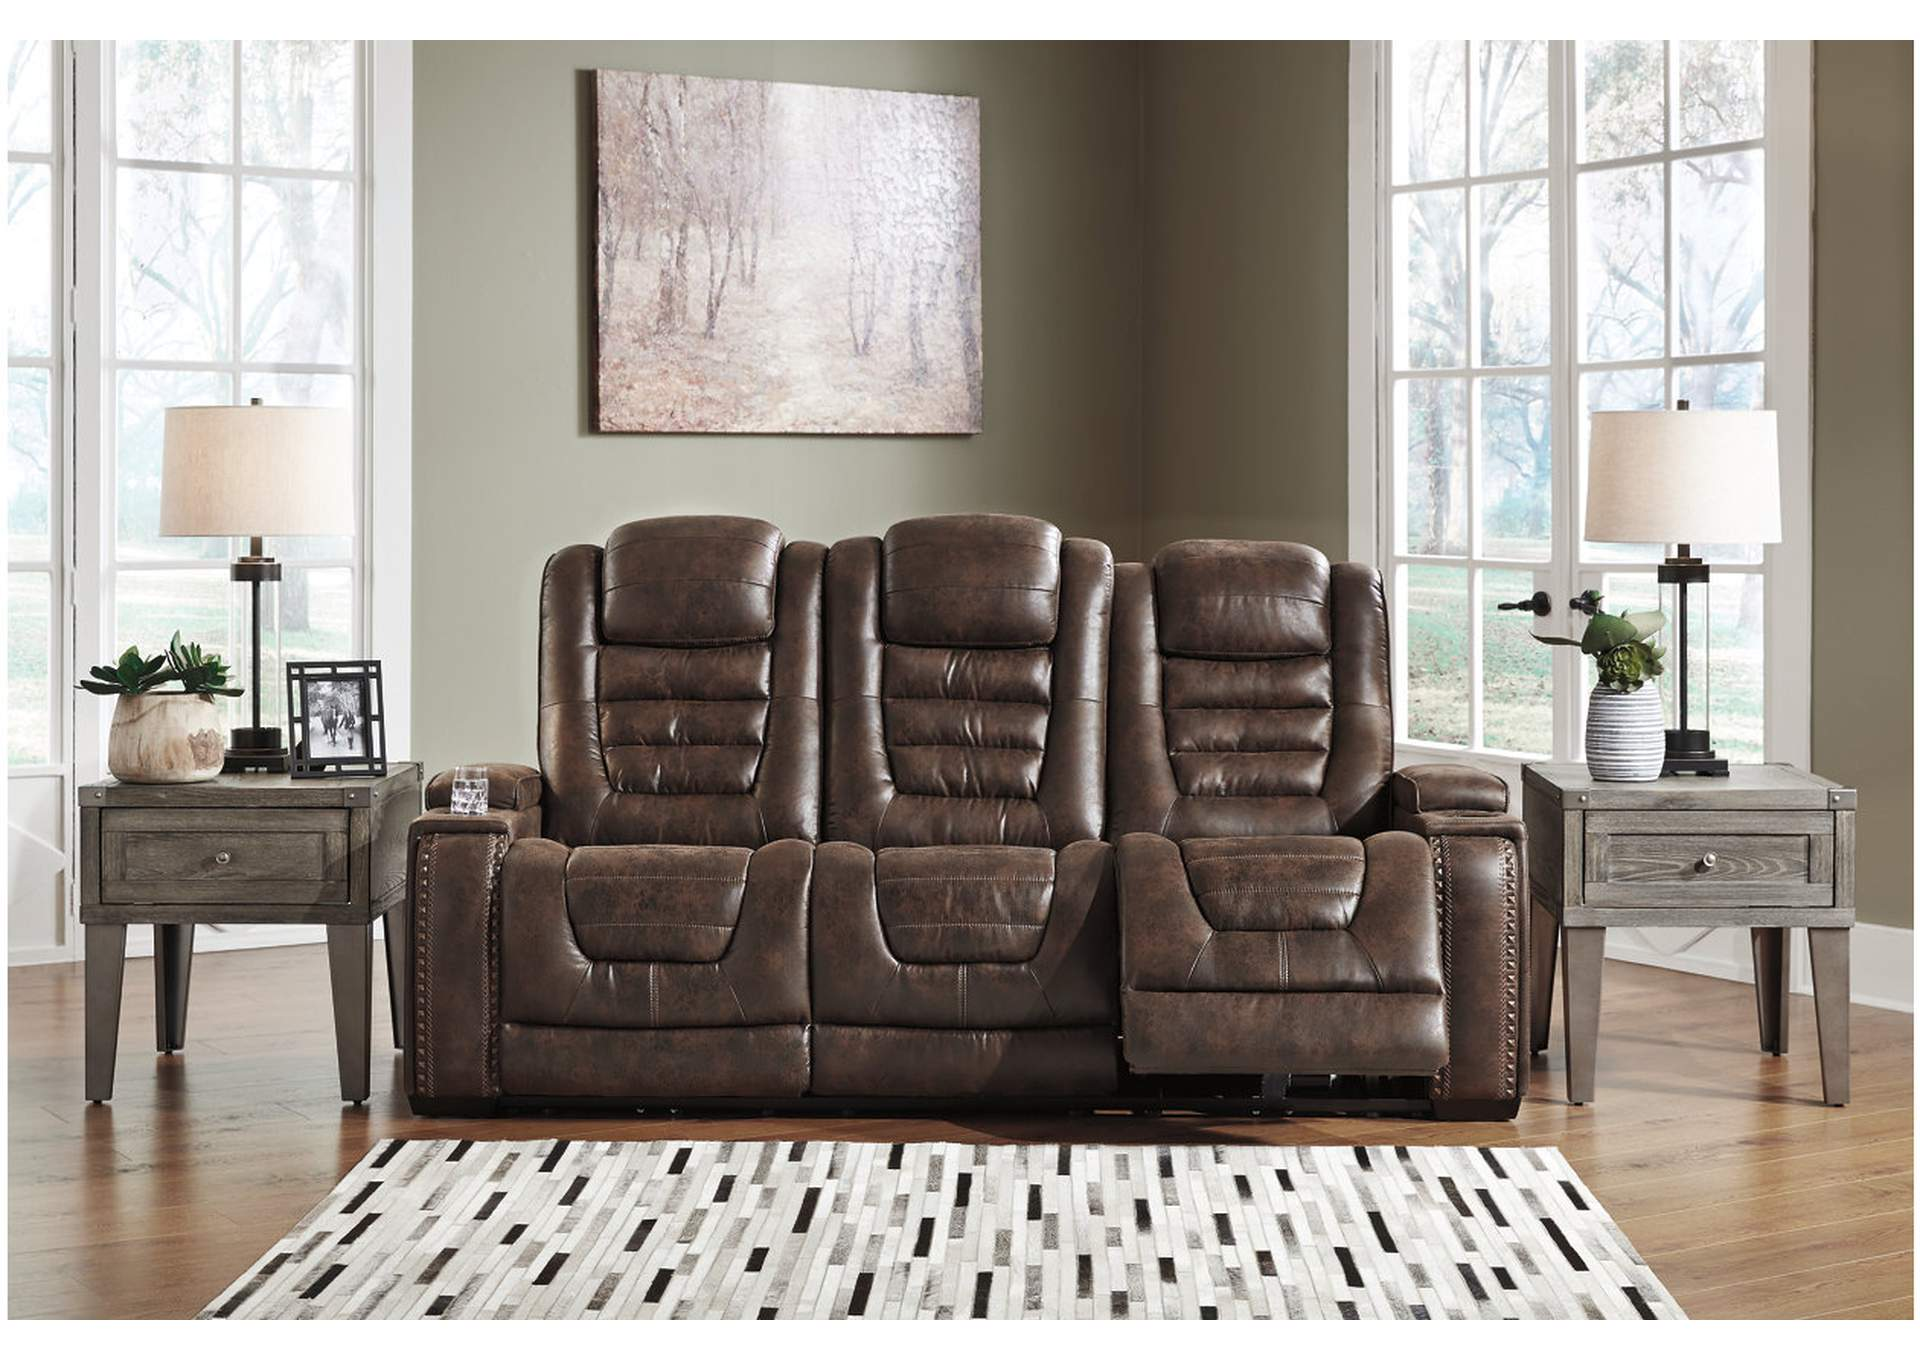 Game Zone Power Reclining Sofa w/Adjustable Headrest,Signature Design By Ashley